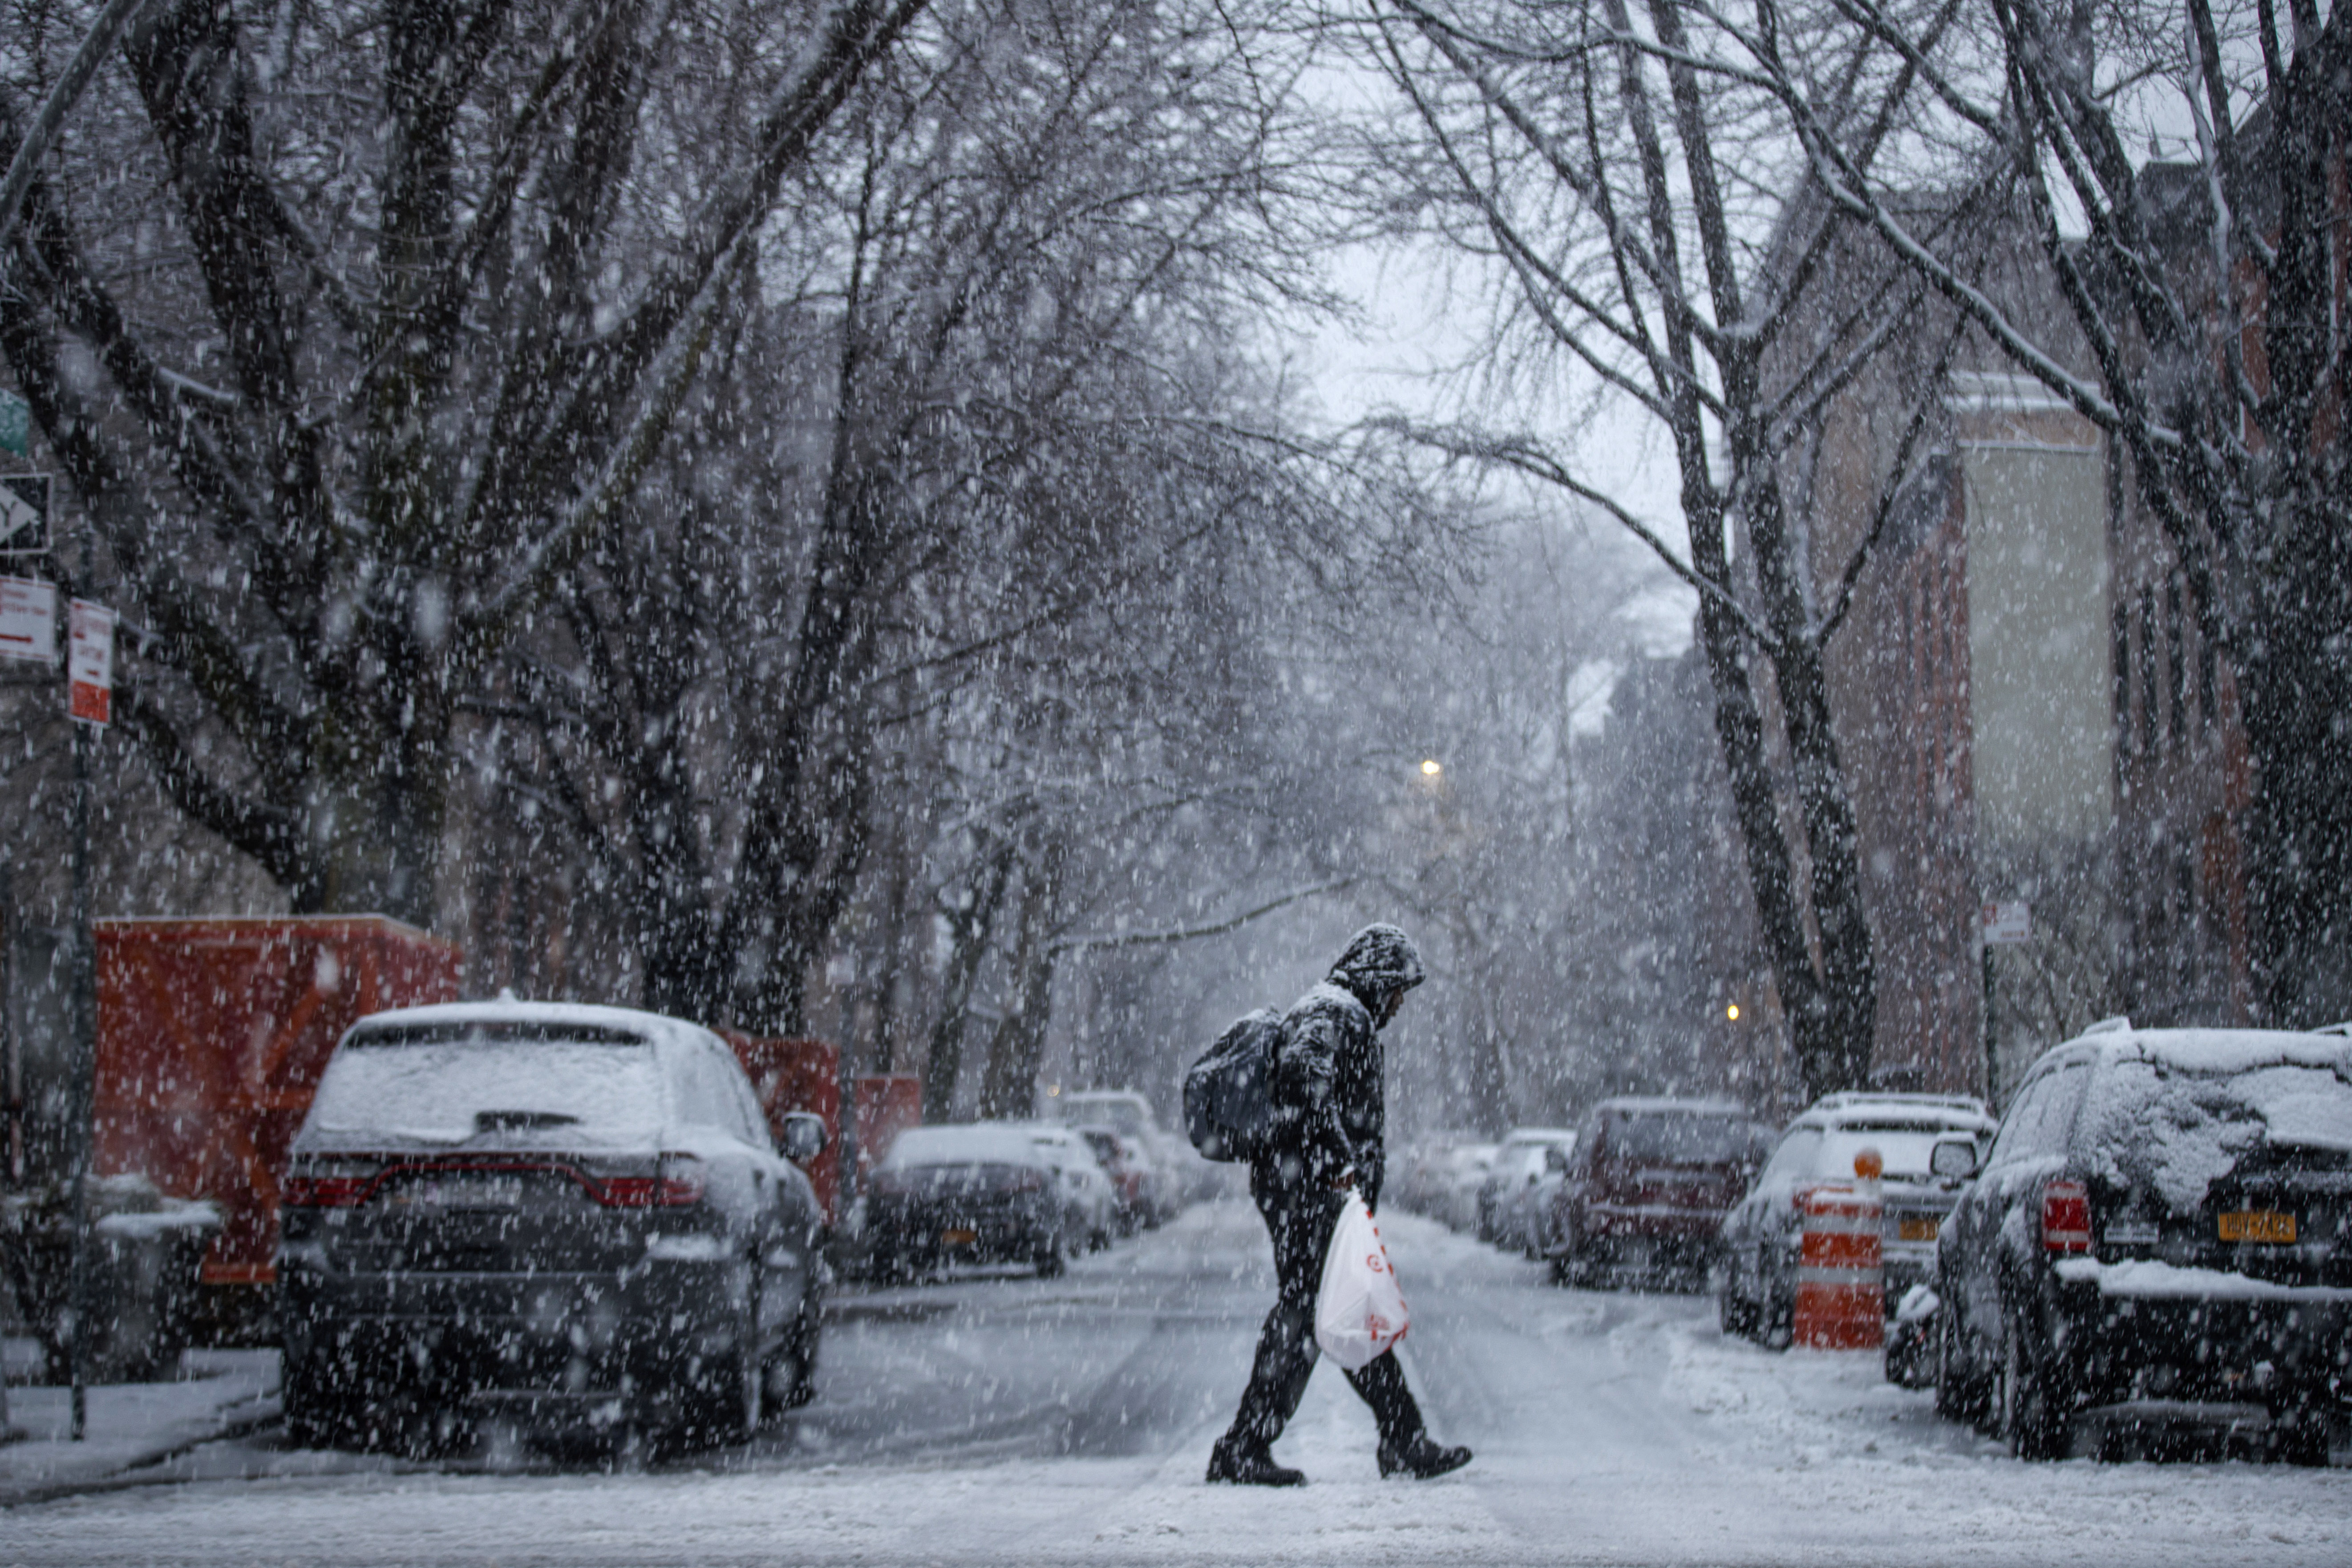 A man walks through the Boerum Hill neighborhood in Brooklyn during a snowstorm, March 7, 2018 in New York City.